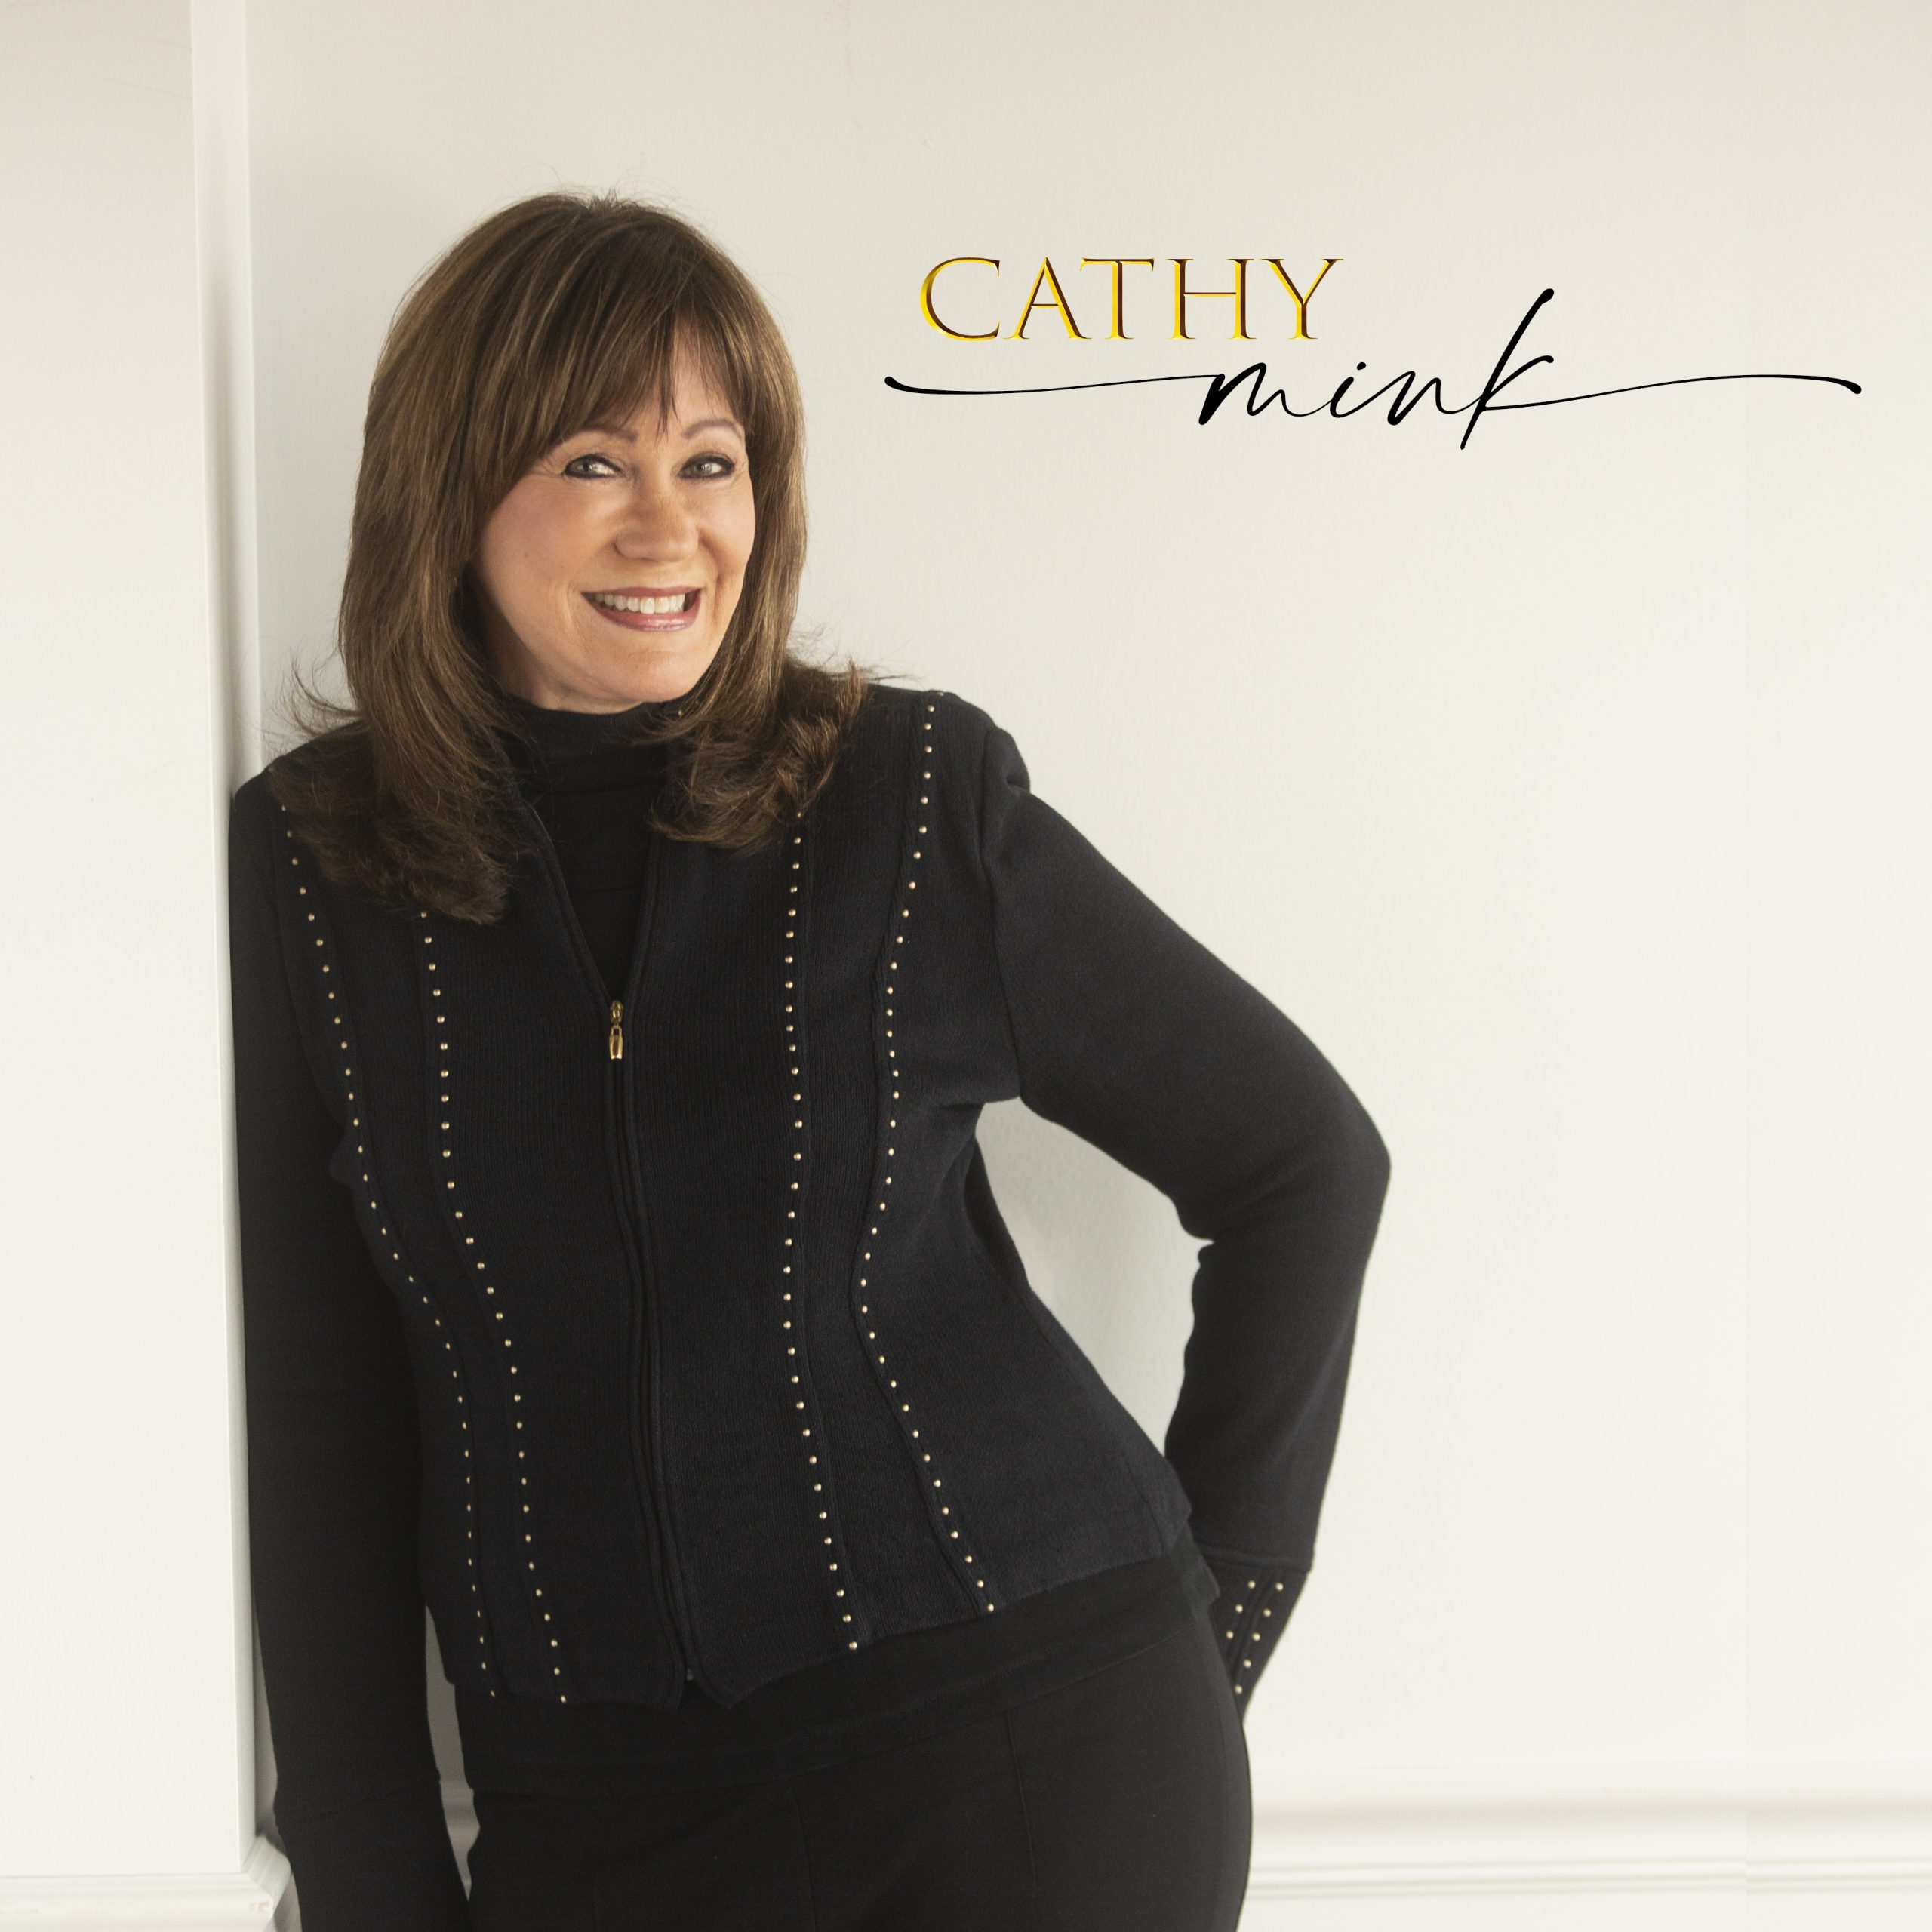 CathyABOUTMEpage